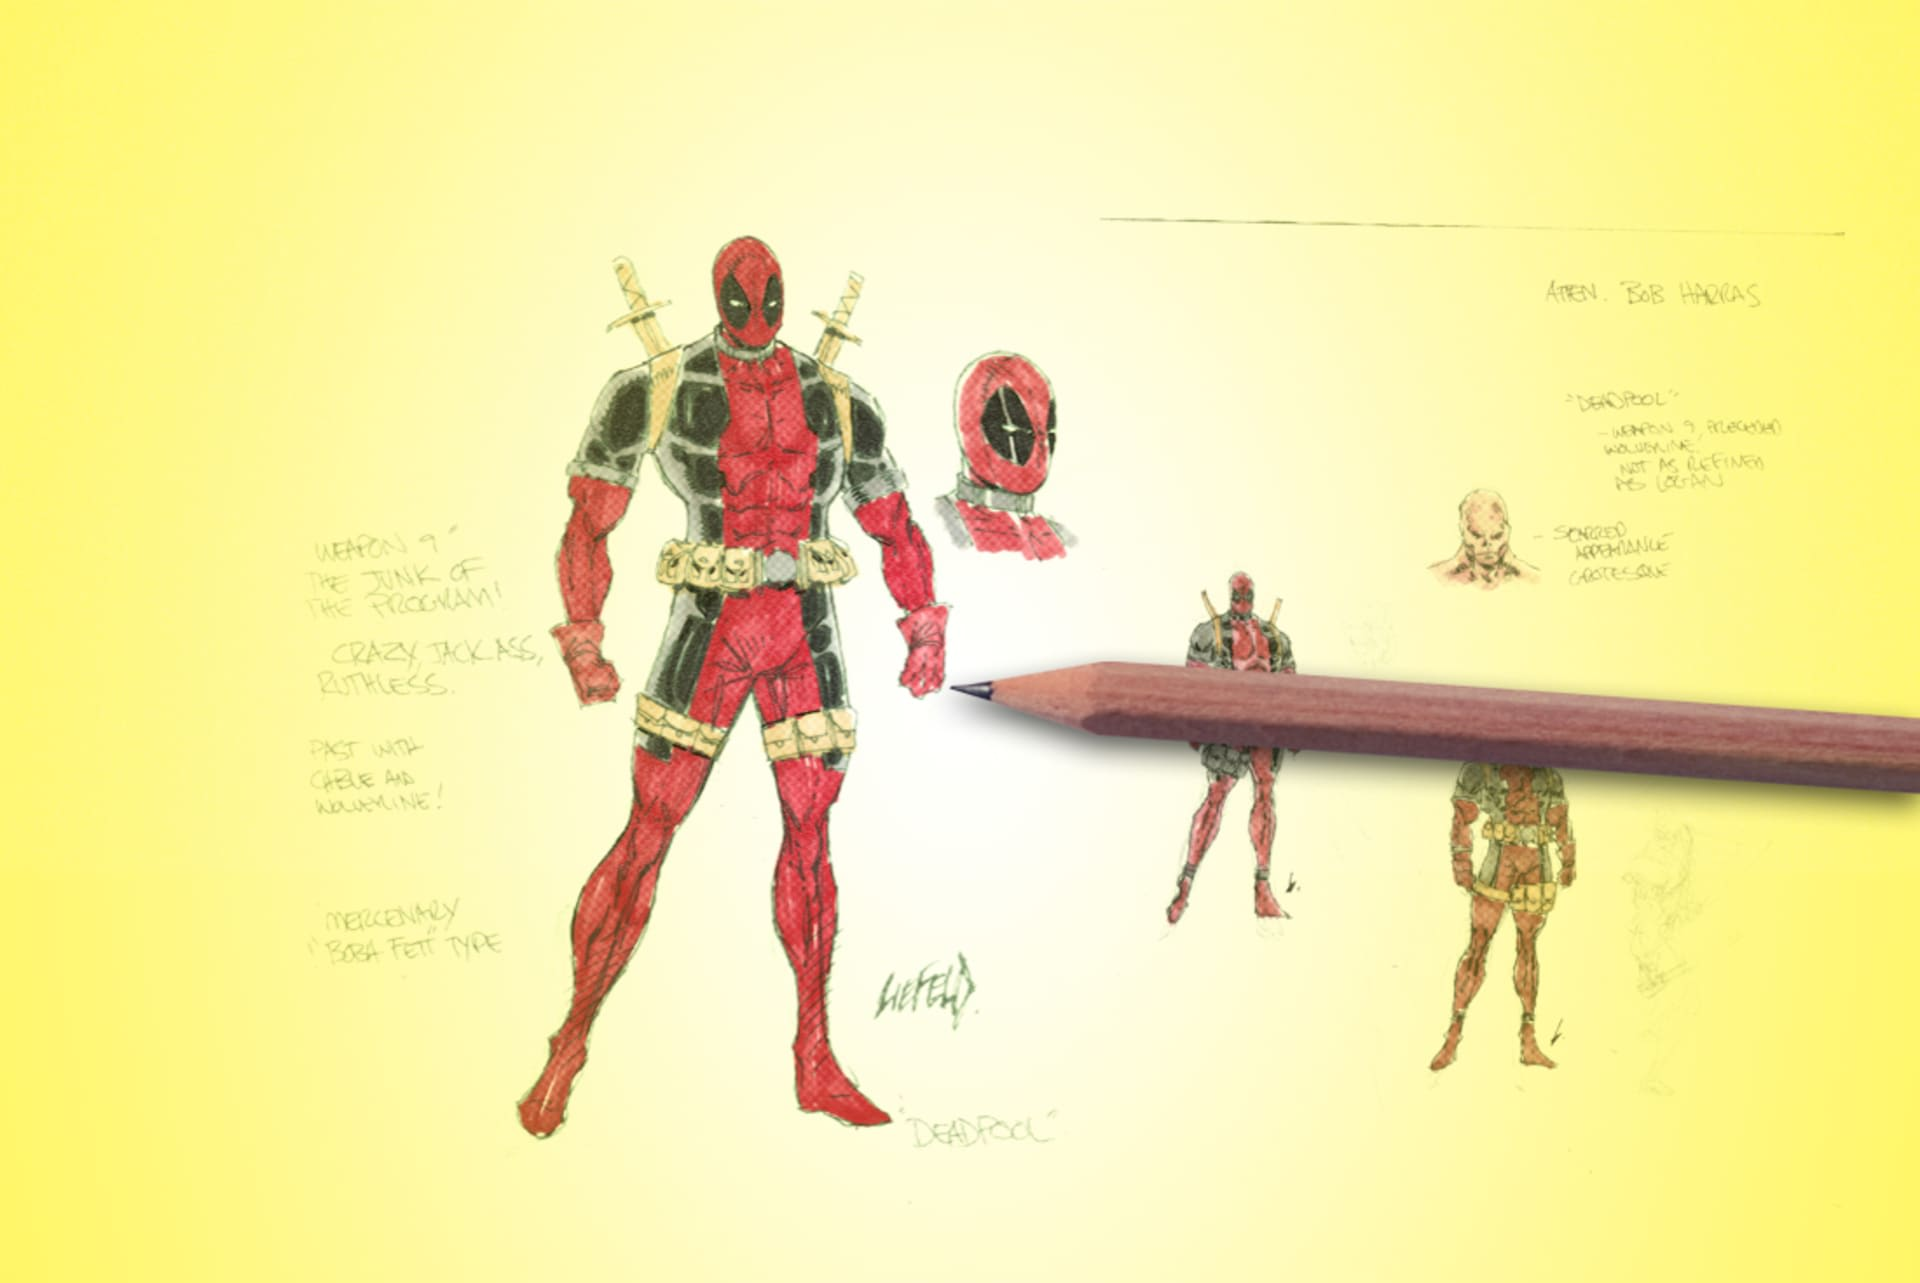 Rob Liefeld's early drawings of Deadpool